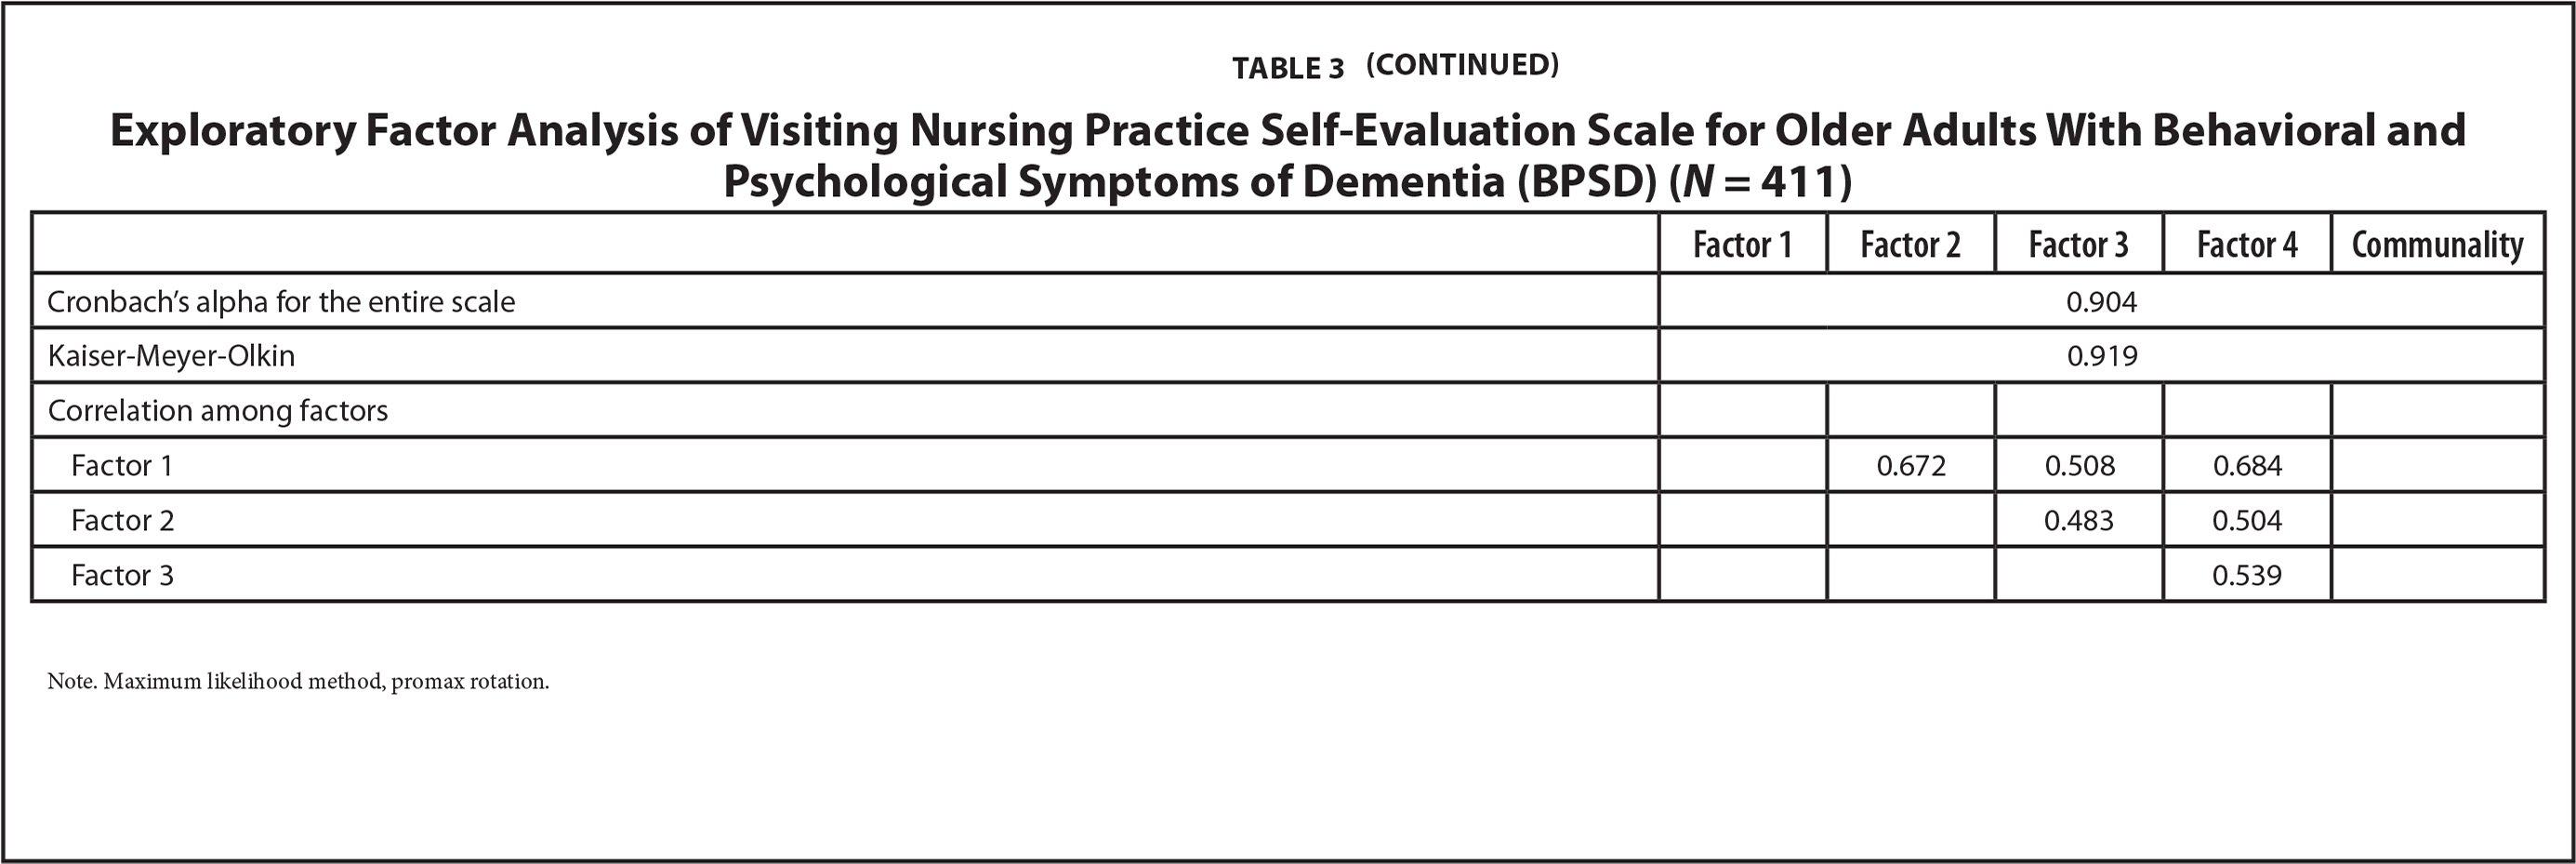 Exploratory Factor Analysis of Visiting Nursing Practice Self-Evaluation Scale for Older Adults With Behavioral and Psychological Symptoms of Dementia (BPSD) (N= 411)